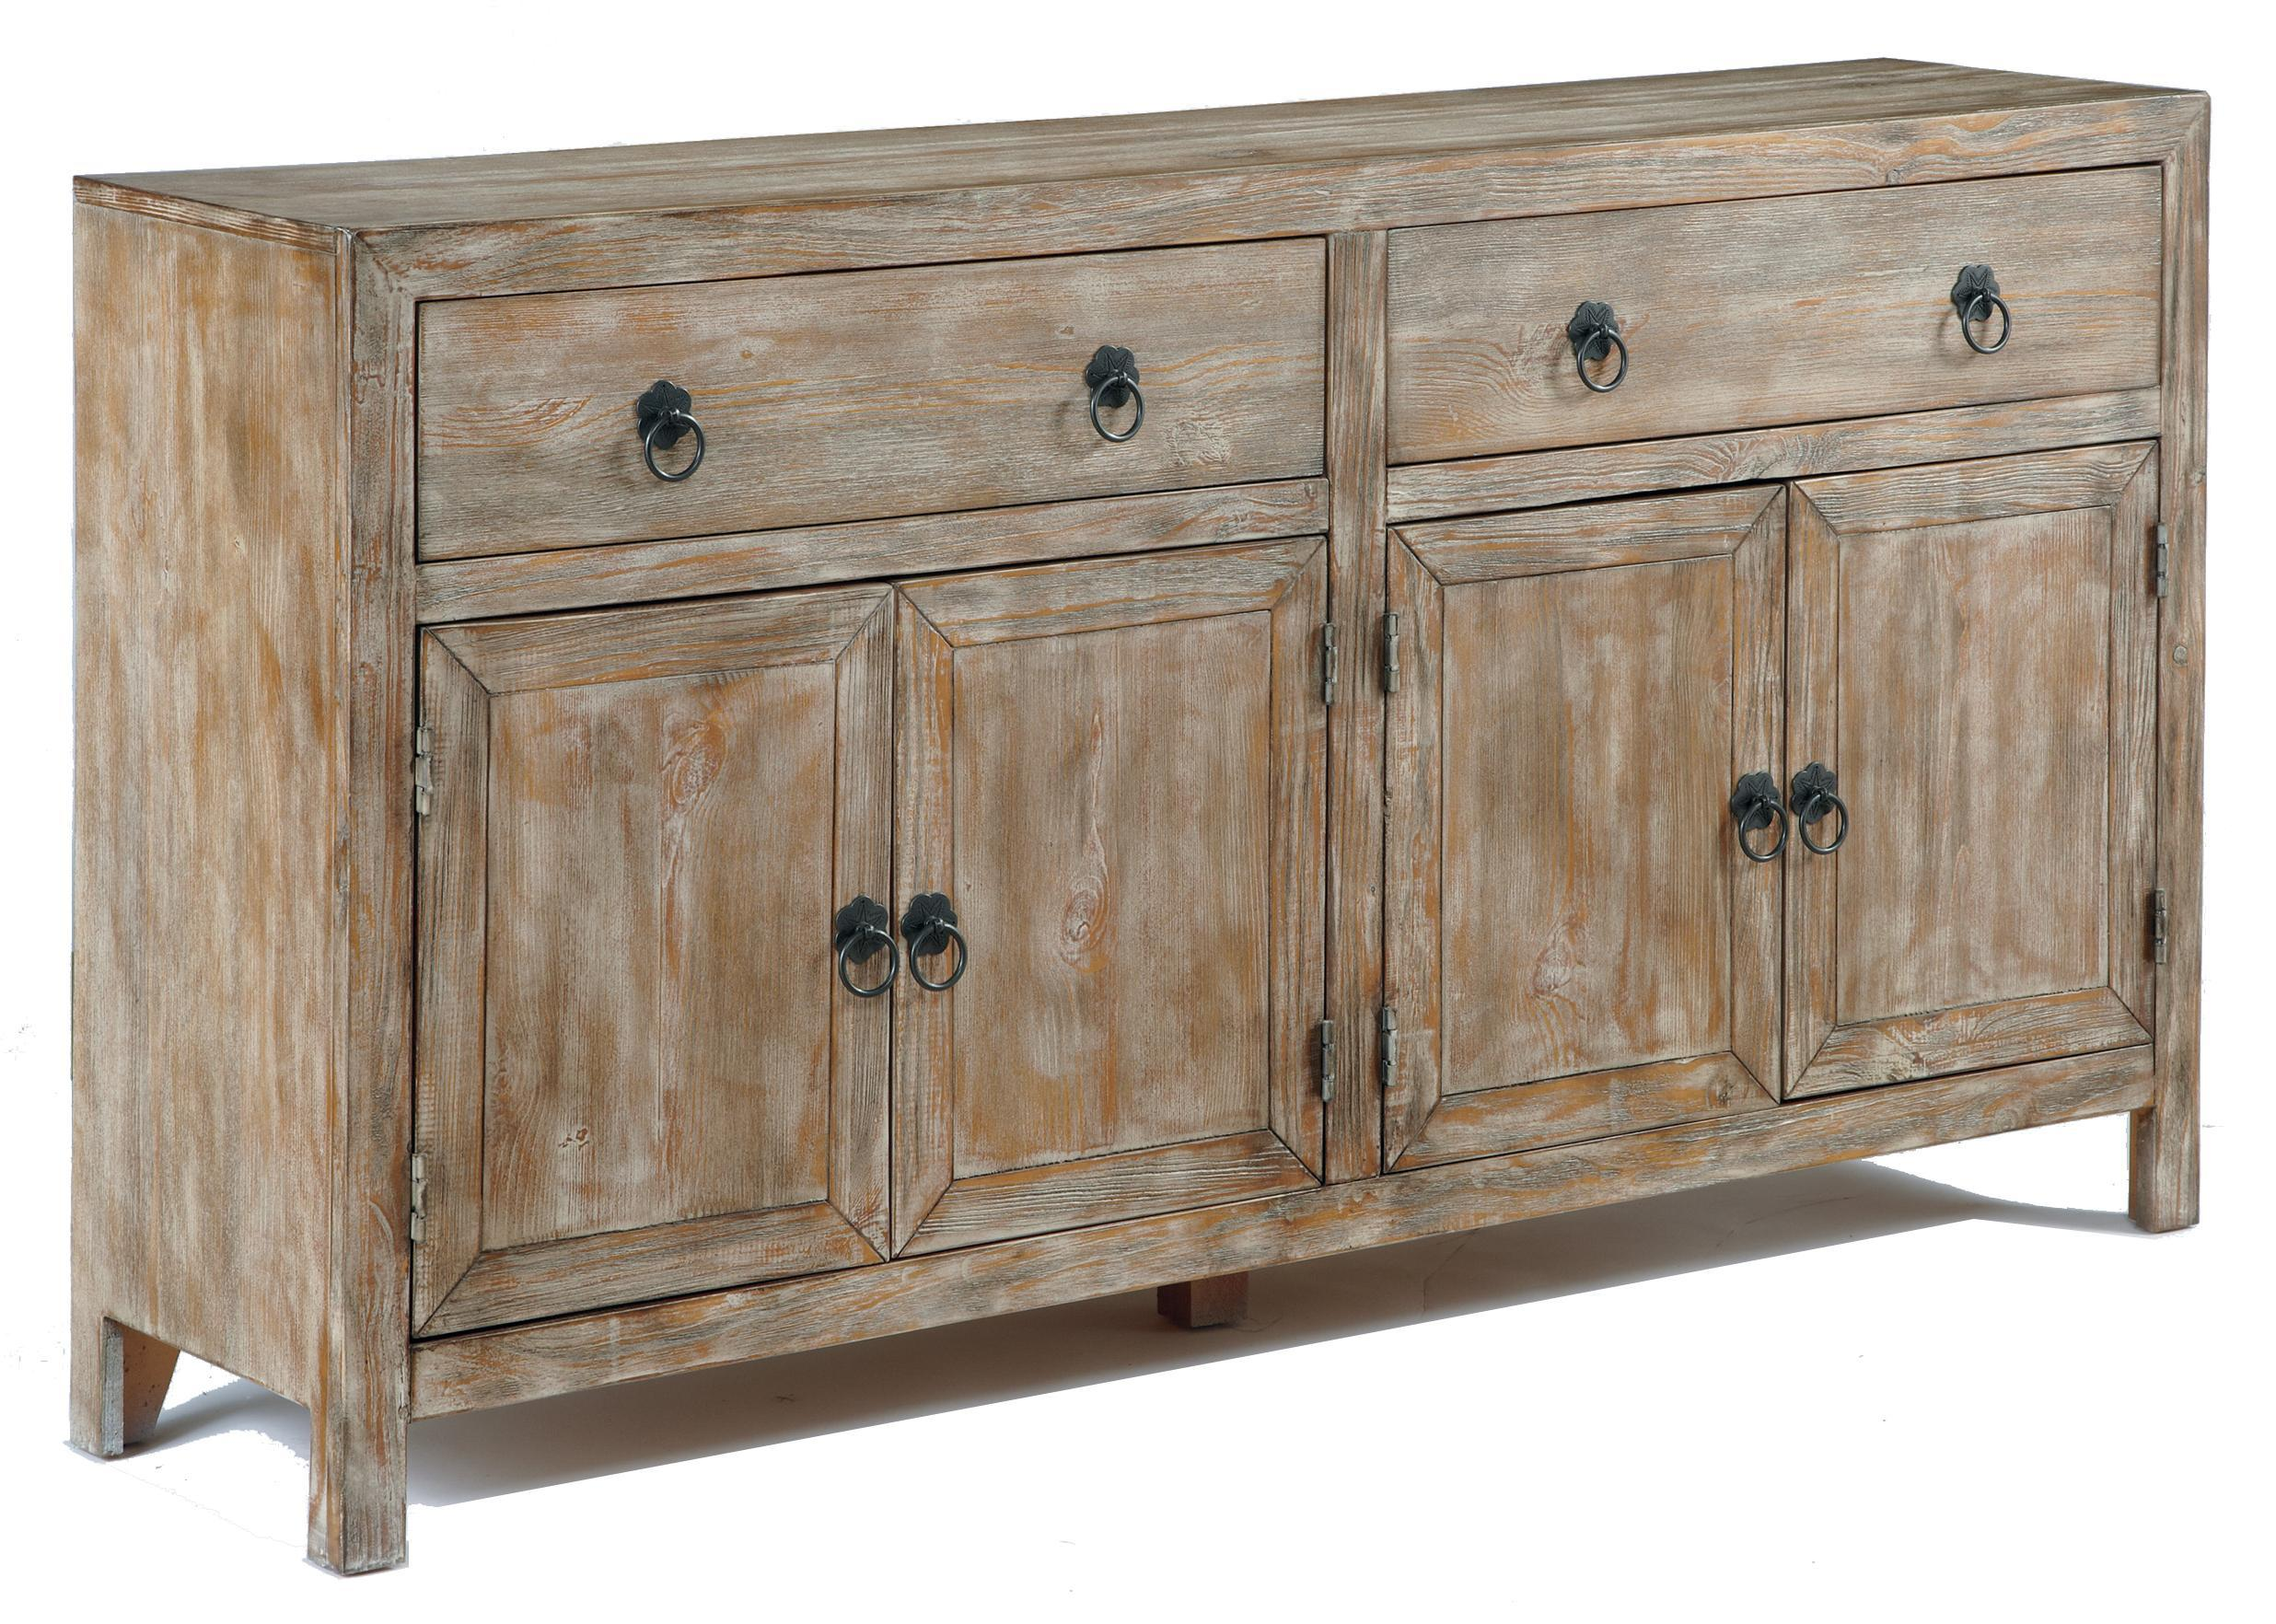 Signature Design by Ashley Rustic Accents Rustic Accent  : T500 360 from www.mybeverlyhillsfurniture.com size 2472 x 1764 jpeg 587kB